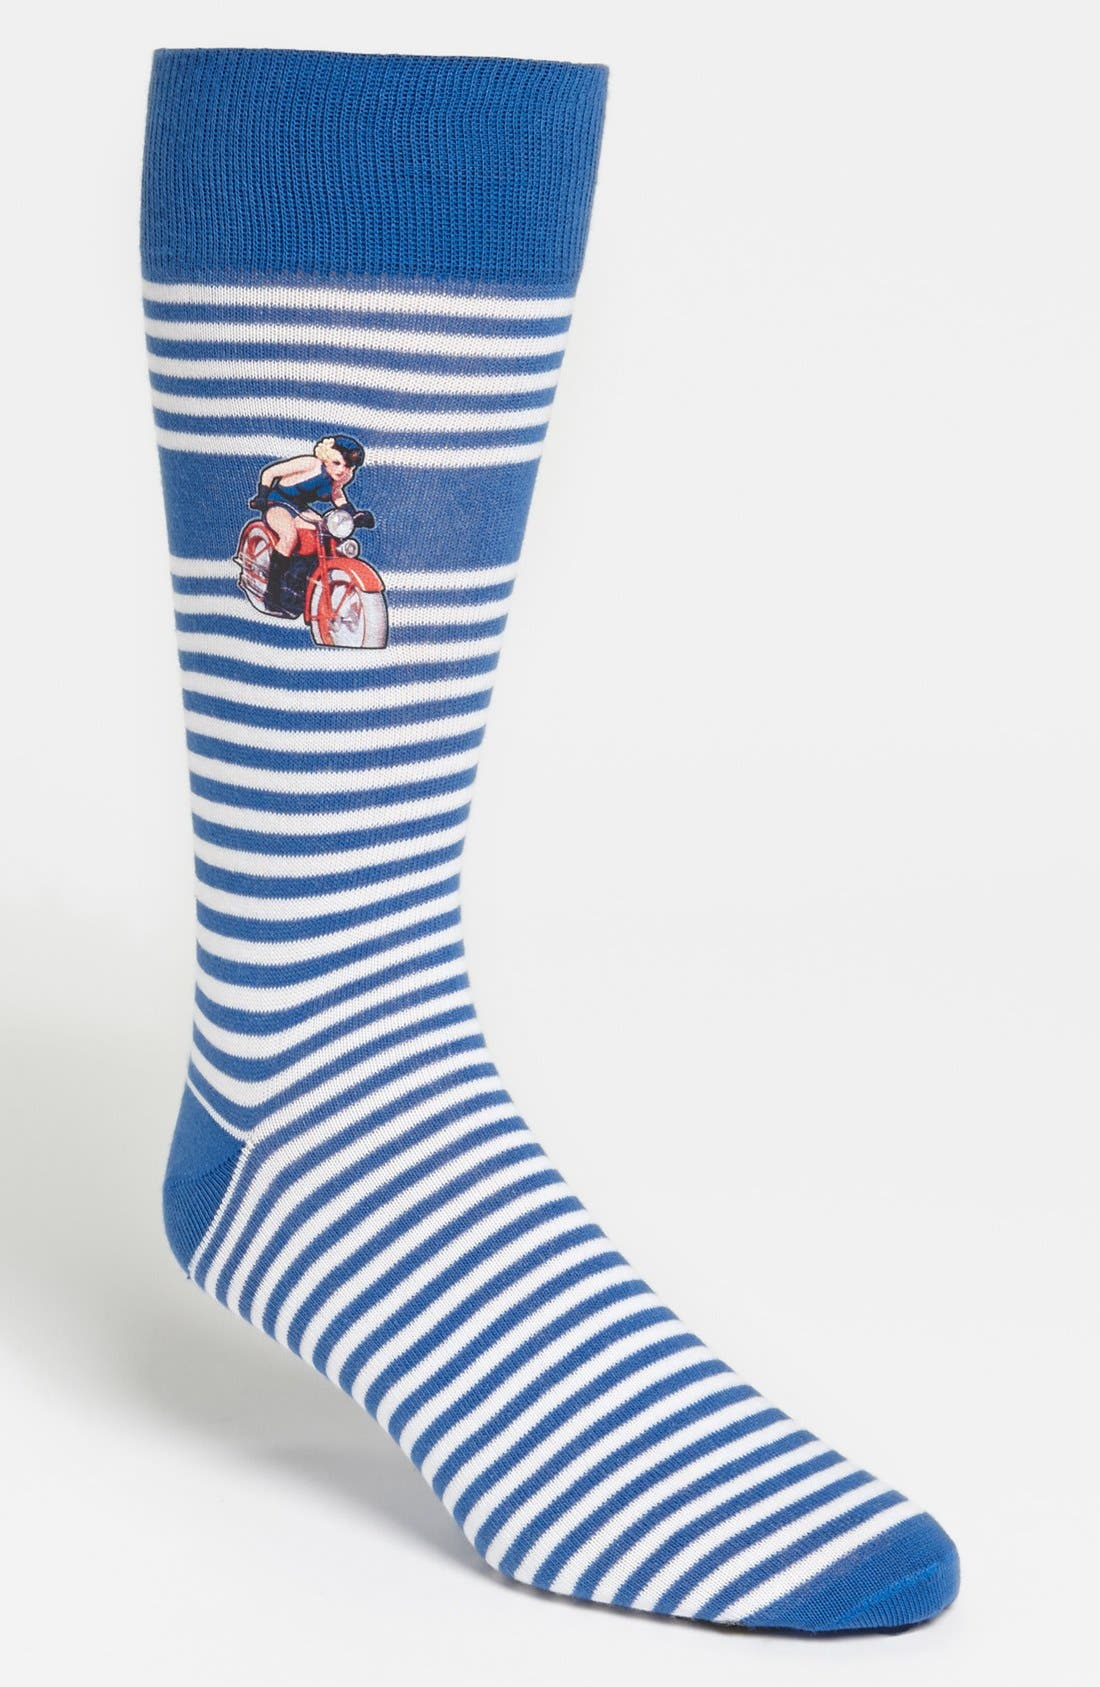 Alternate Image 1 Selected - Lorenzo Uomo 'Heat Transfer' Socks